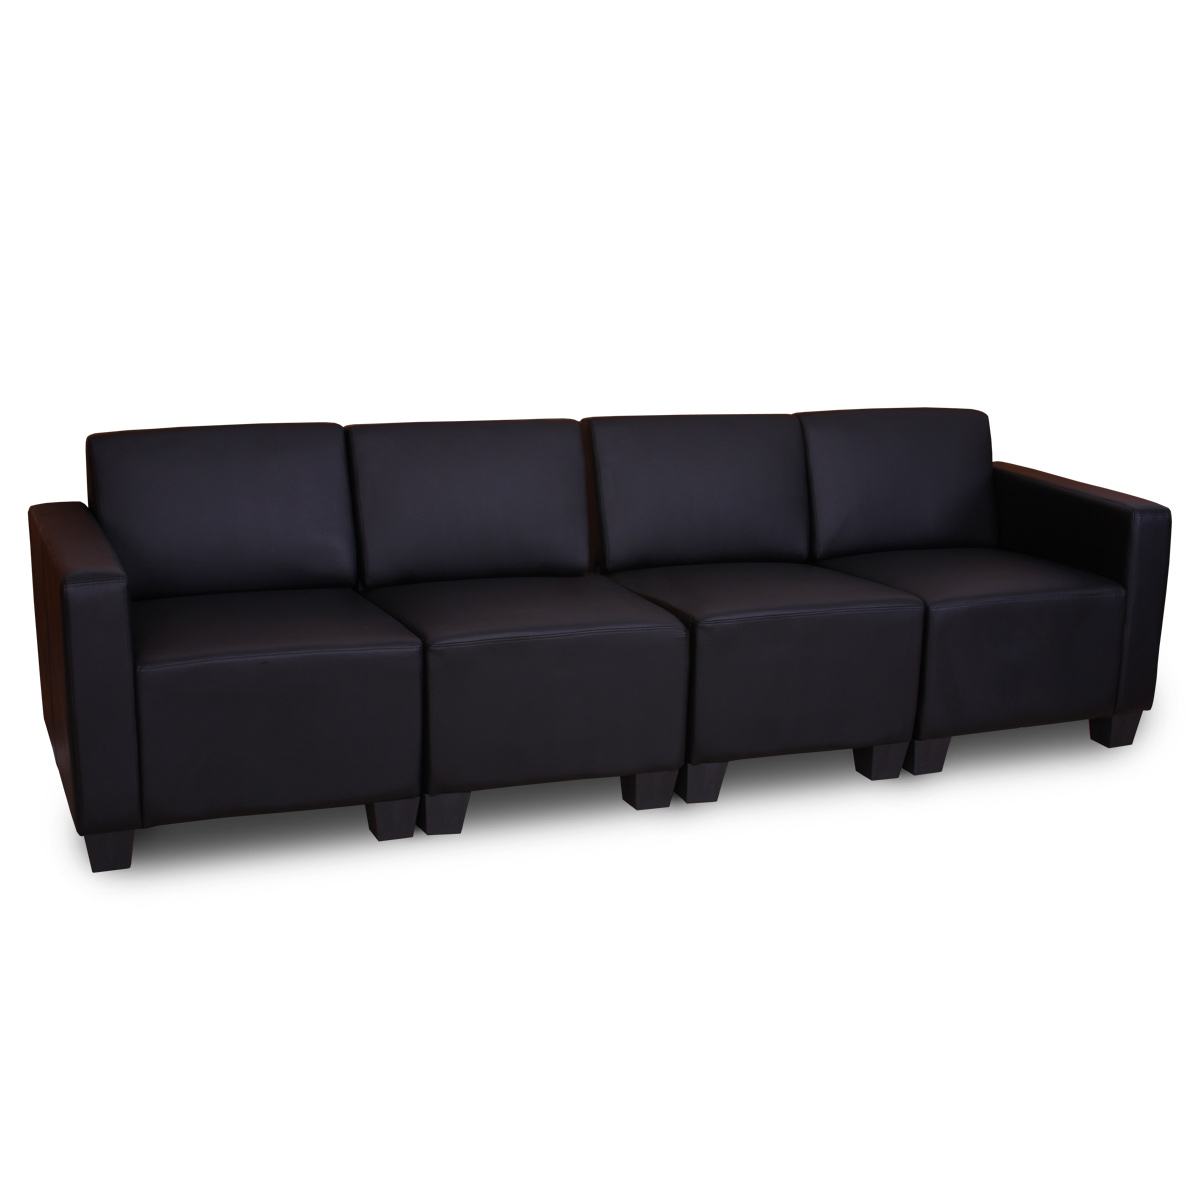 modular 4 sitzer sofa couch lyon kunstleder rot schwarz. Black Bedroom Furniture Sets. Home Design Ideas